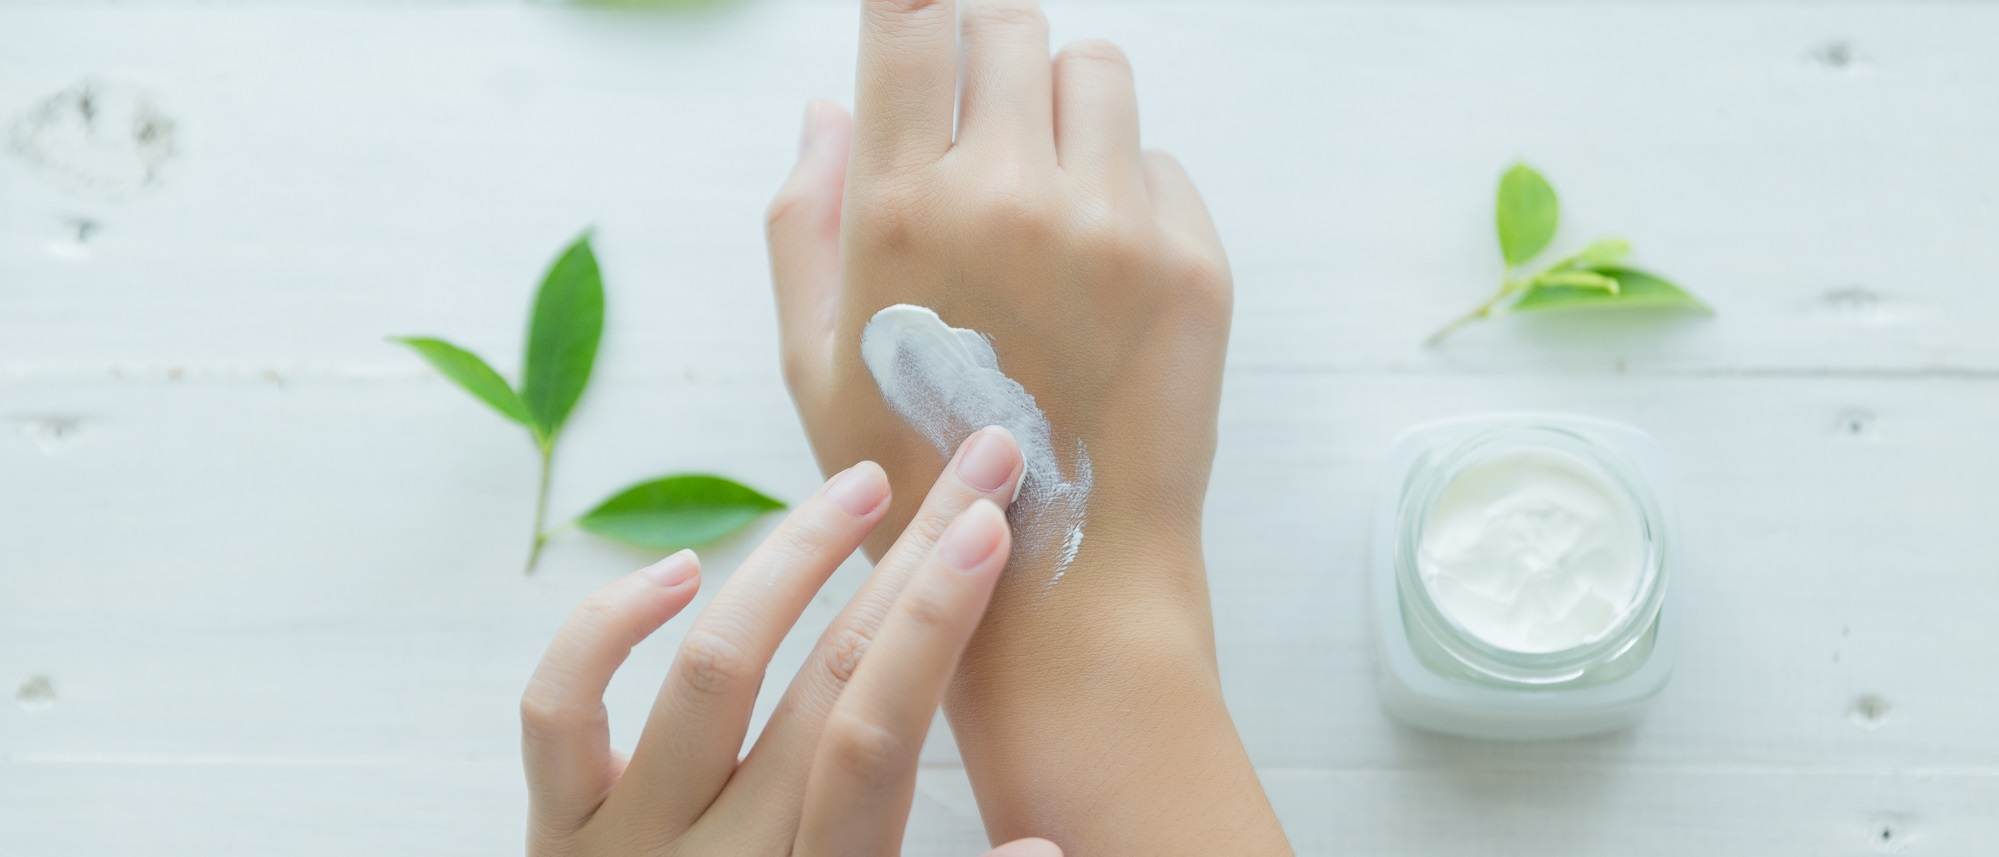 Is your skin severely irritated, itchy or inflamed?